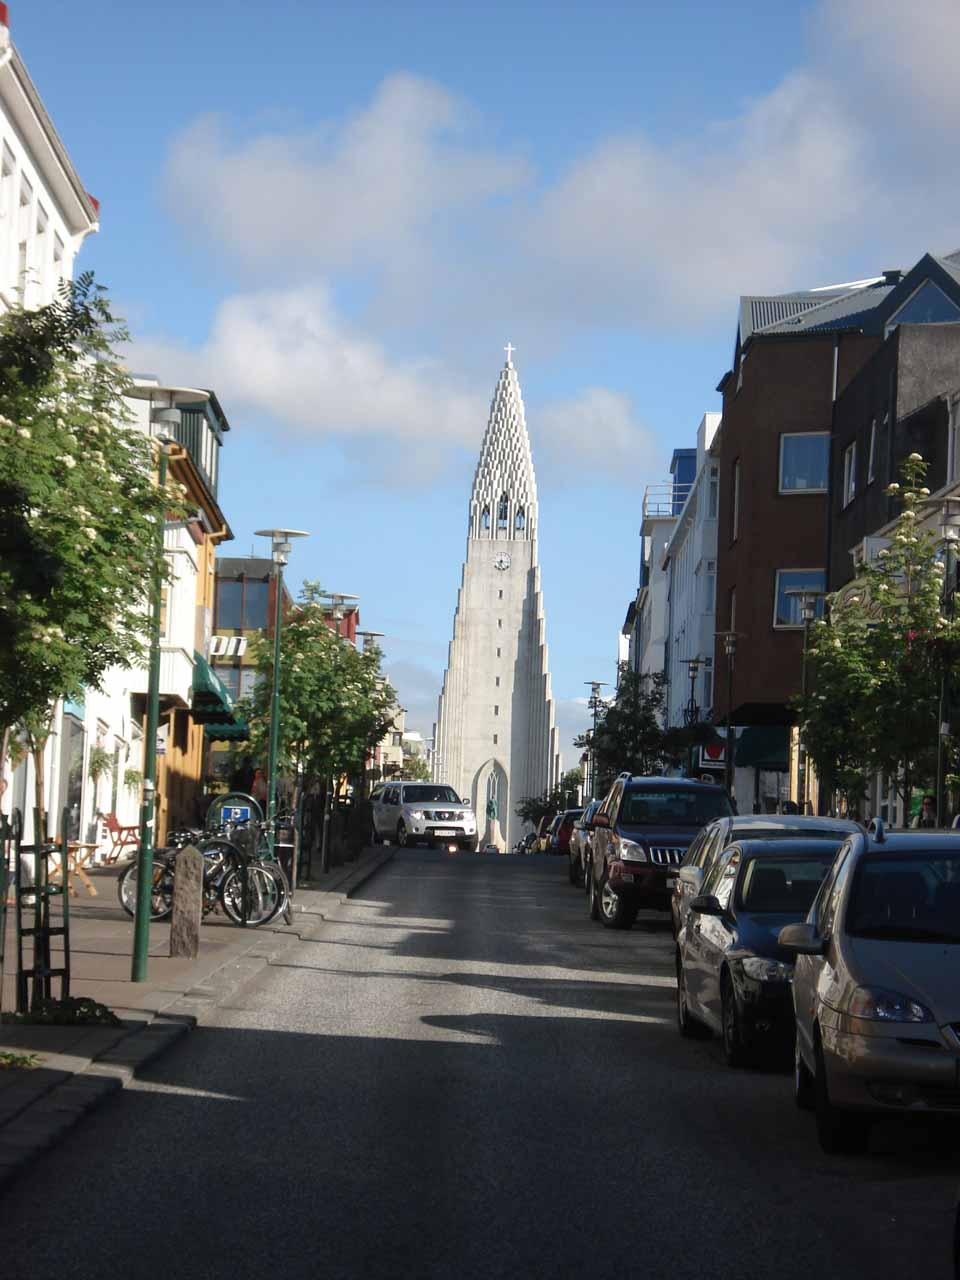 Back in Reykjavik with Hallgrimskirkja in the distance